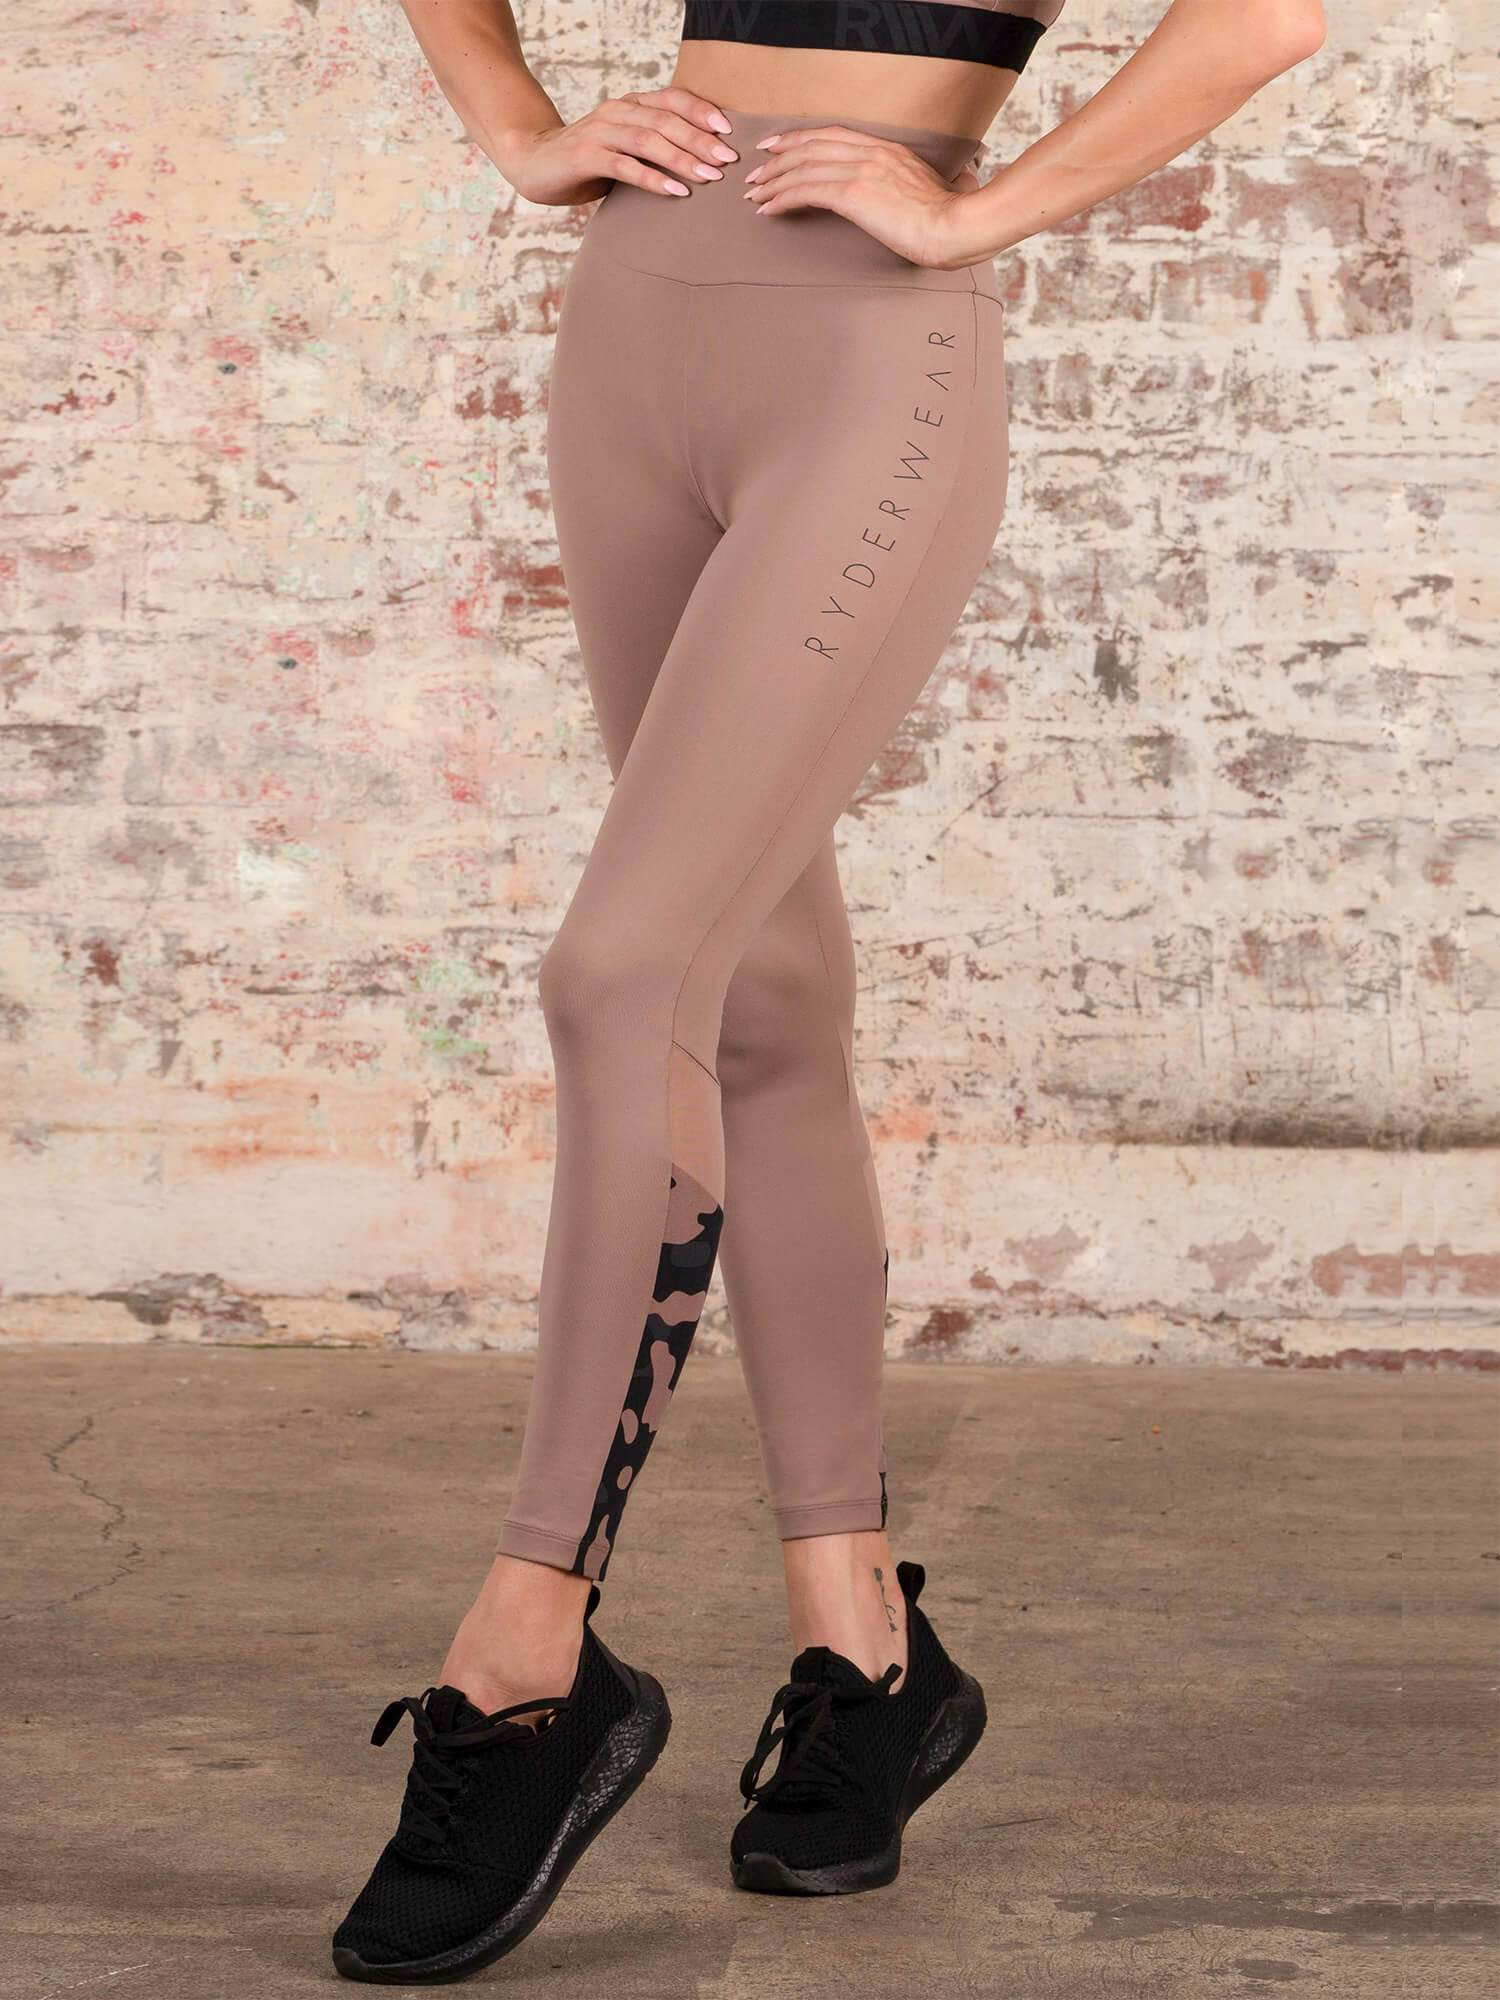 Ryderwear Camo High Waisted Leggings - Rose Taupre